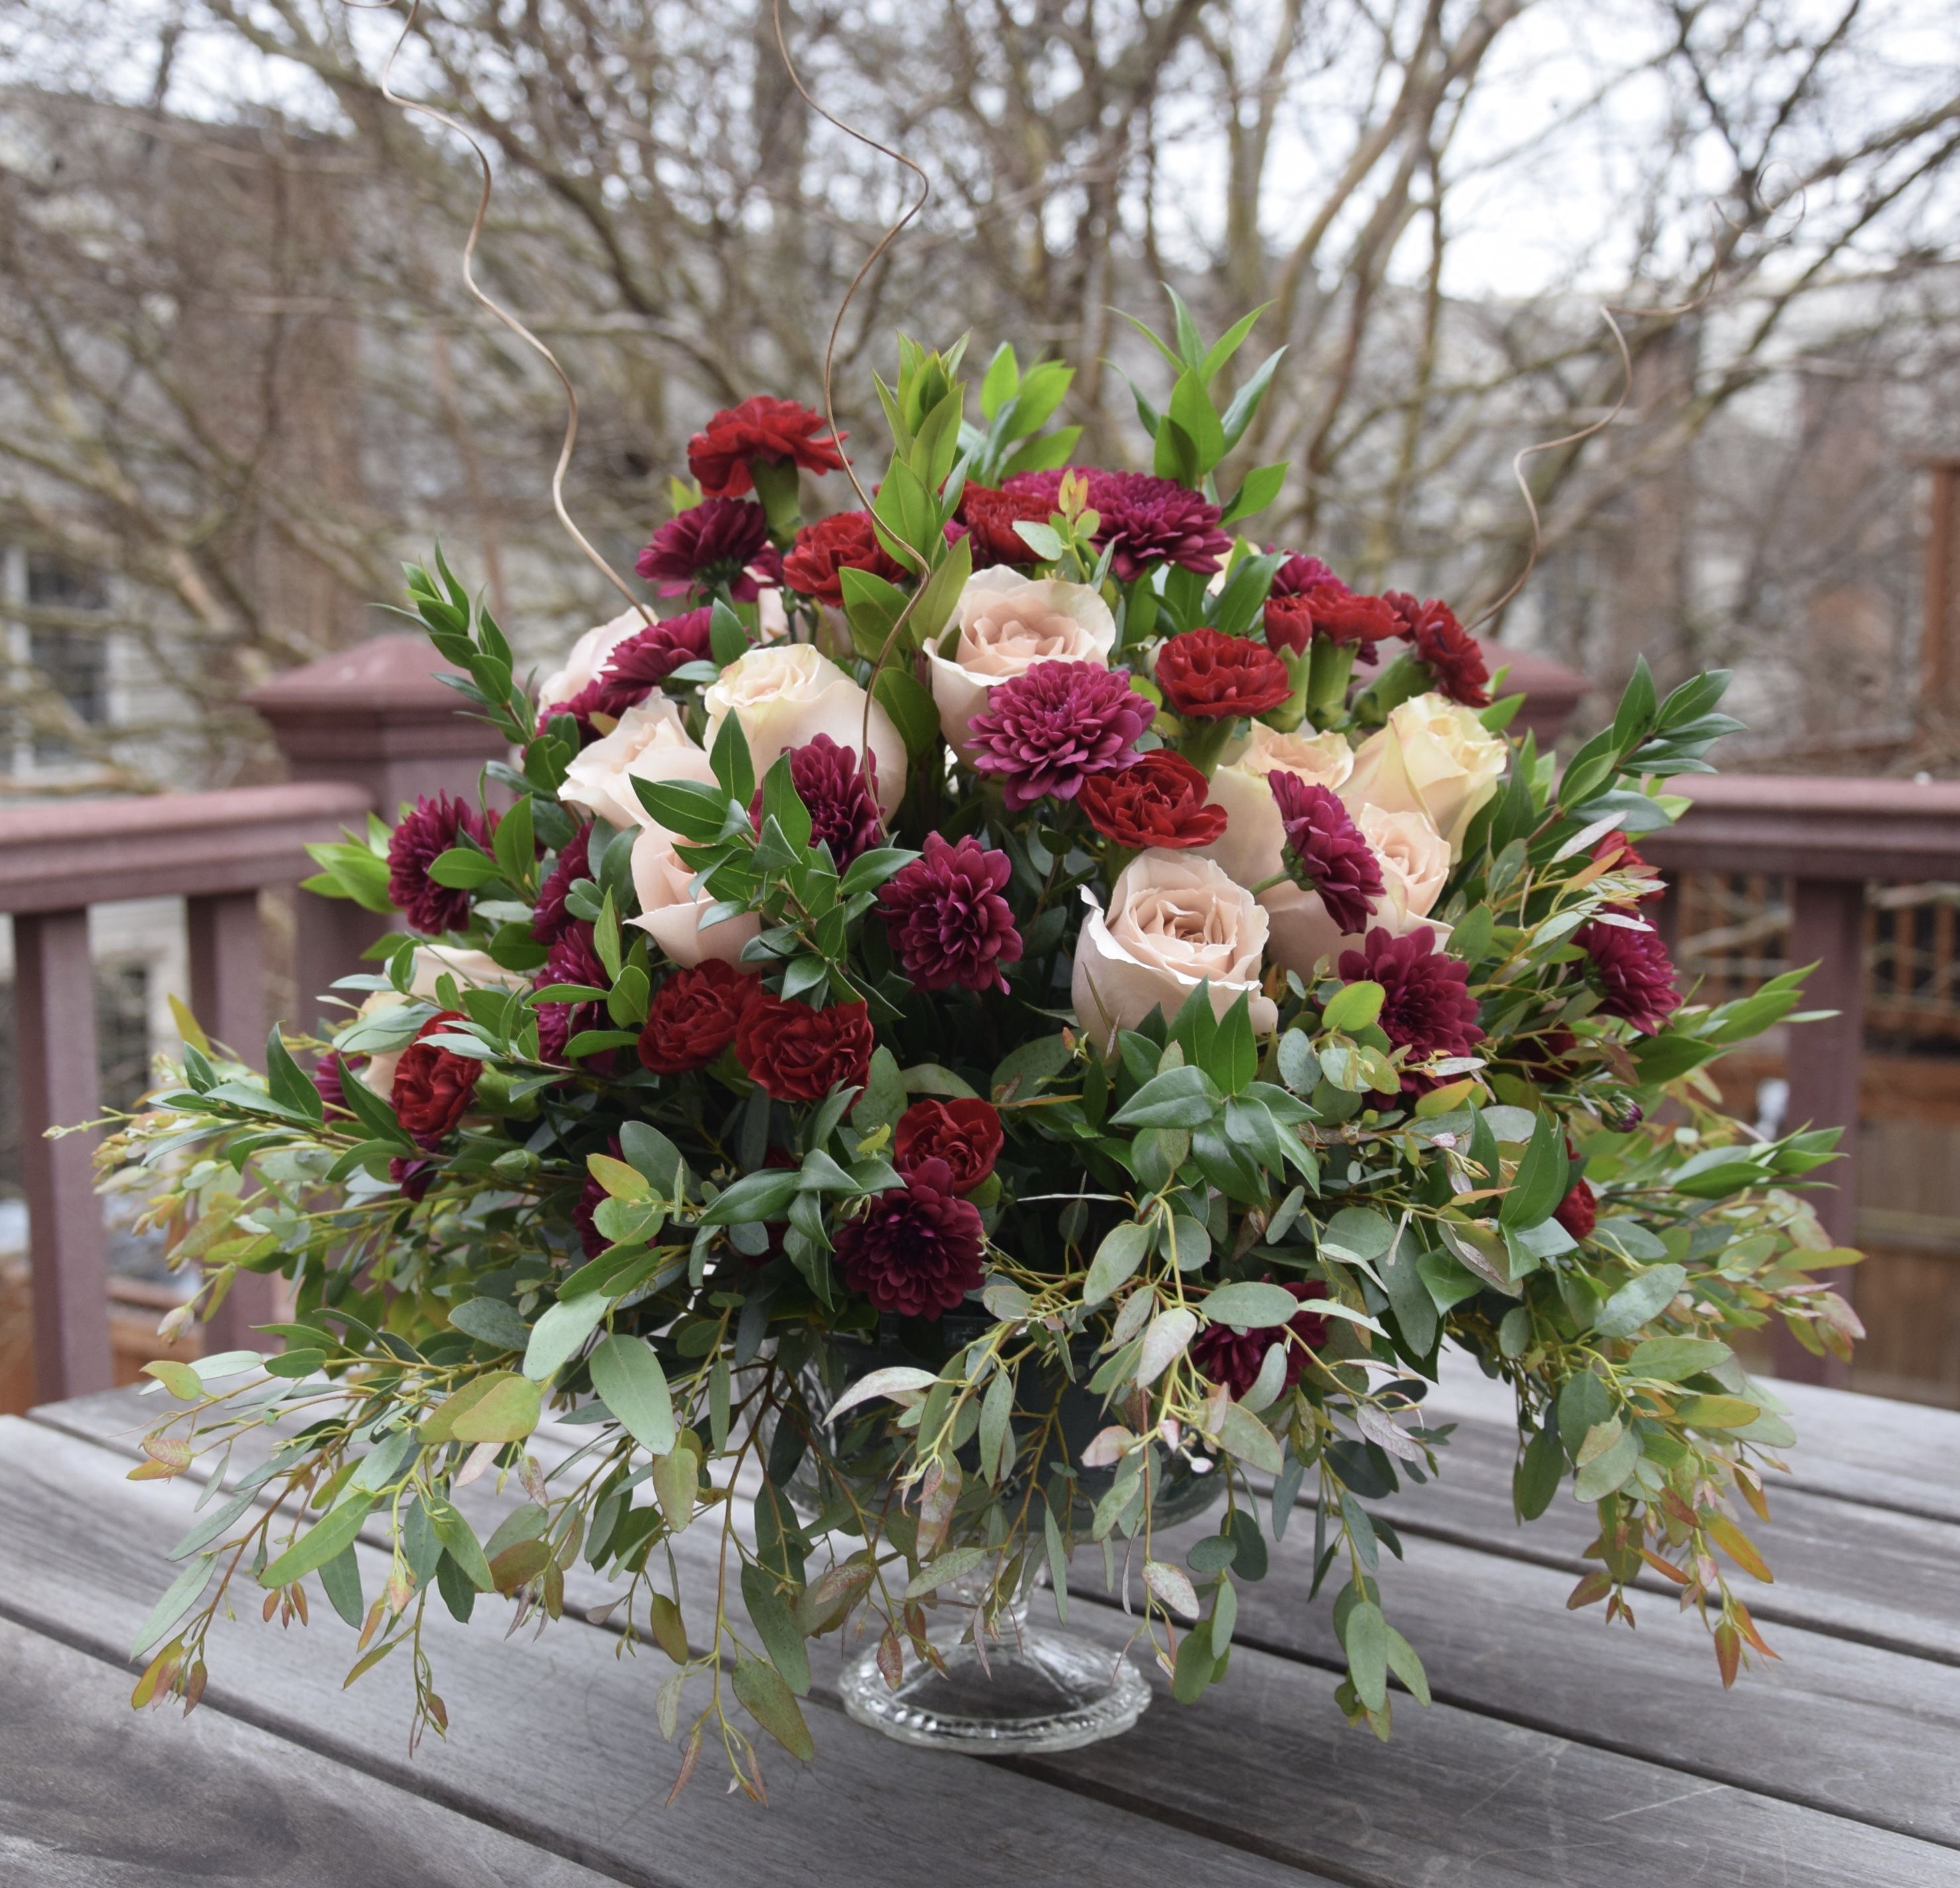 Table Centerpiece In Burgundy And Peach Colors. Wedding